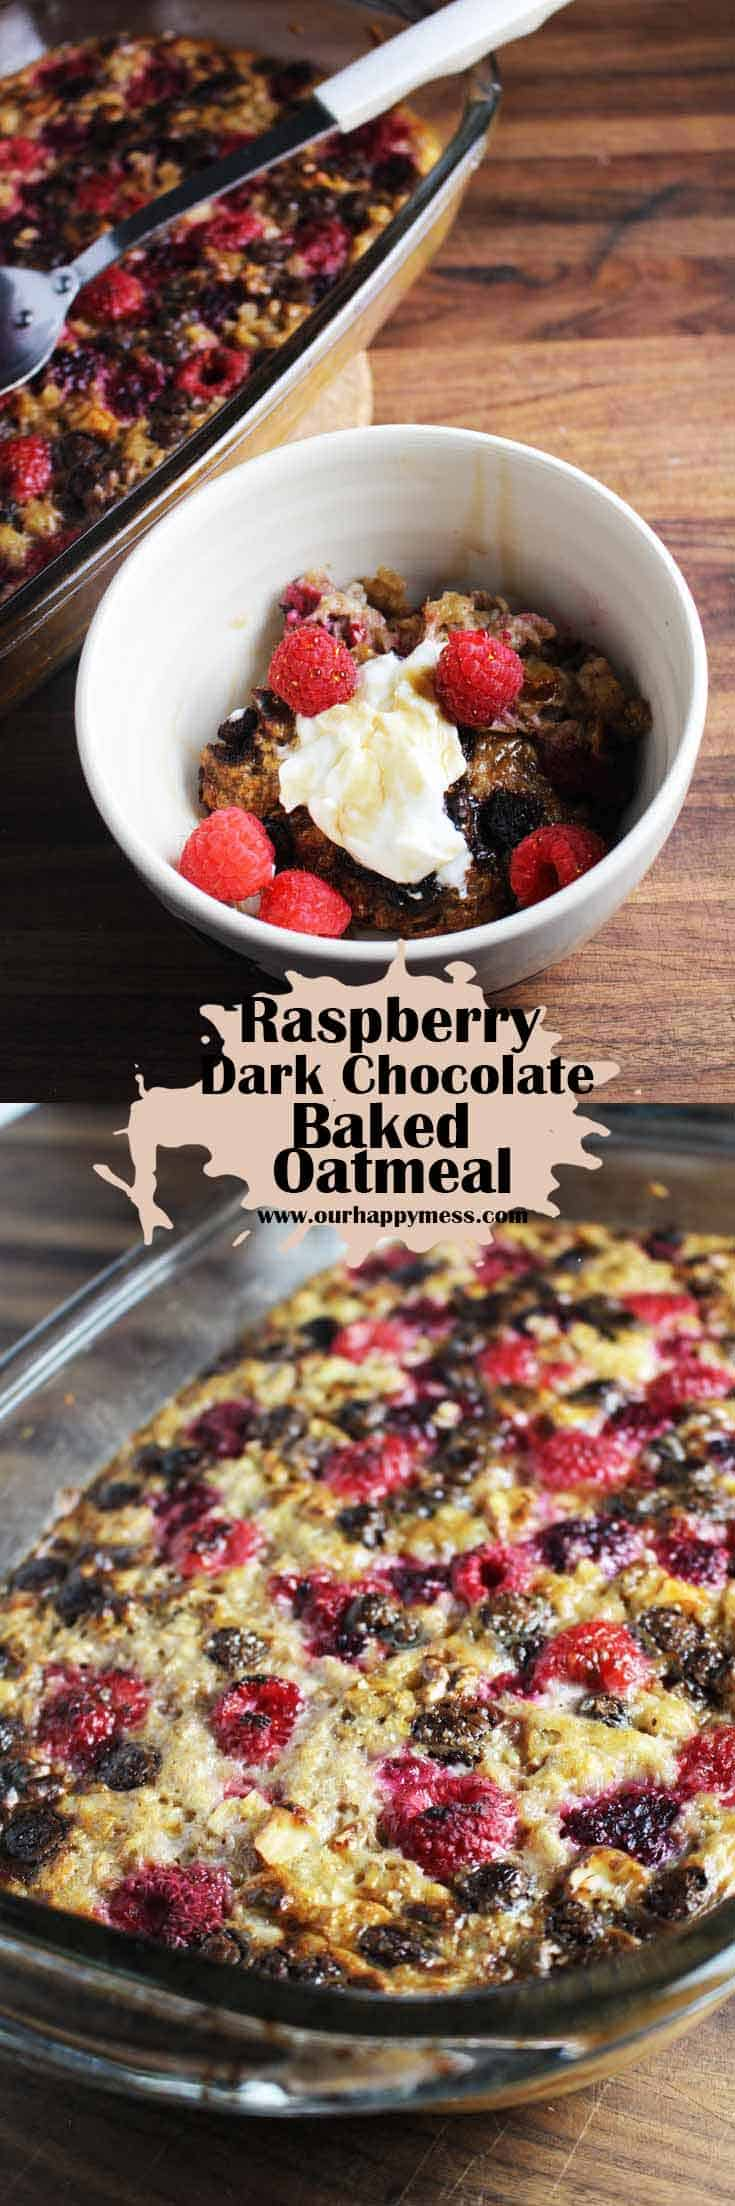 This raspberry dark chocolate baked oatmeal is a super easy, hearty, make-ahead breakfast that feels just a little indulgent. You can make it on a Sunday and eat it all week. #bakedoatmeal #breakfast #oatmealrecipe